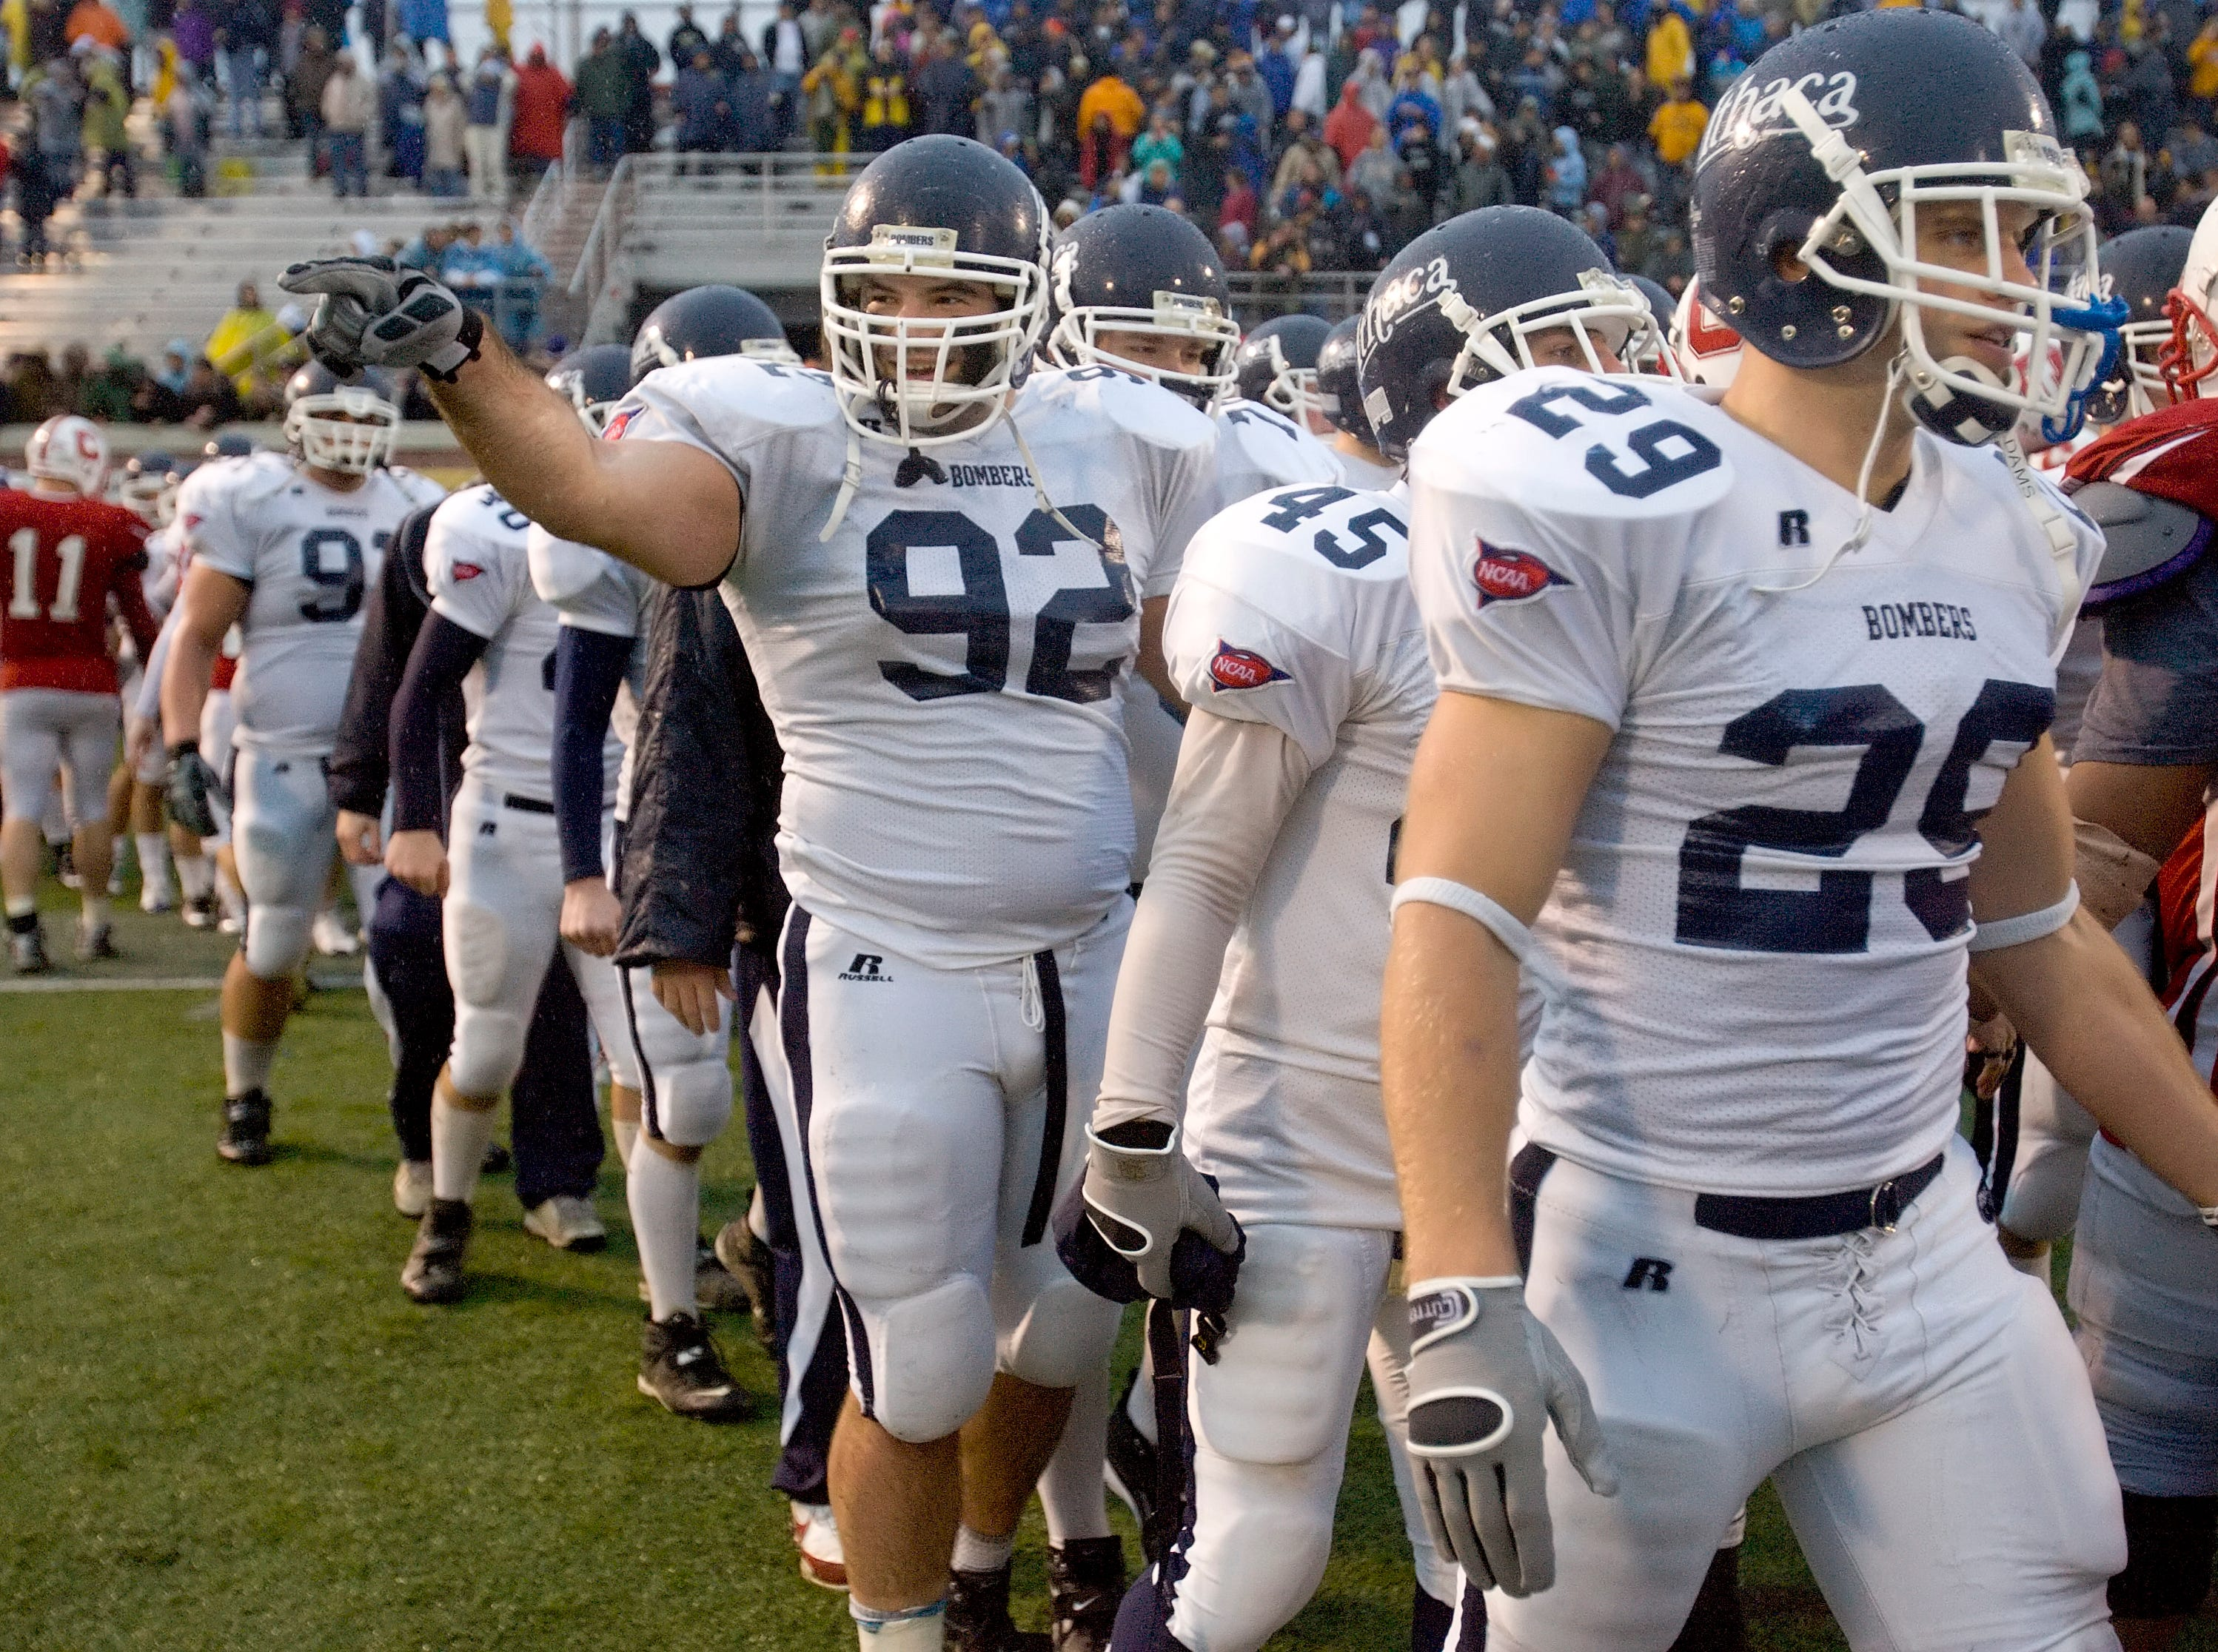 2008: Ithaca College defensive tackle Joe Goetz points toward a friend in the crowd after the Bombers won last year's Cortaca Jug game at SUNY Cortland, 35-13. The two teams will renew their longstanding rivalry at noon Saturday at Butterfield Stadium. The game is already sold out.